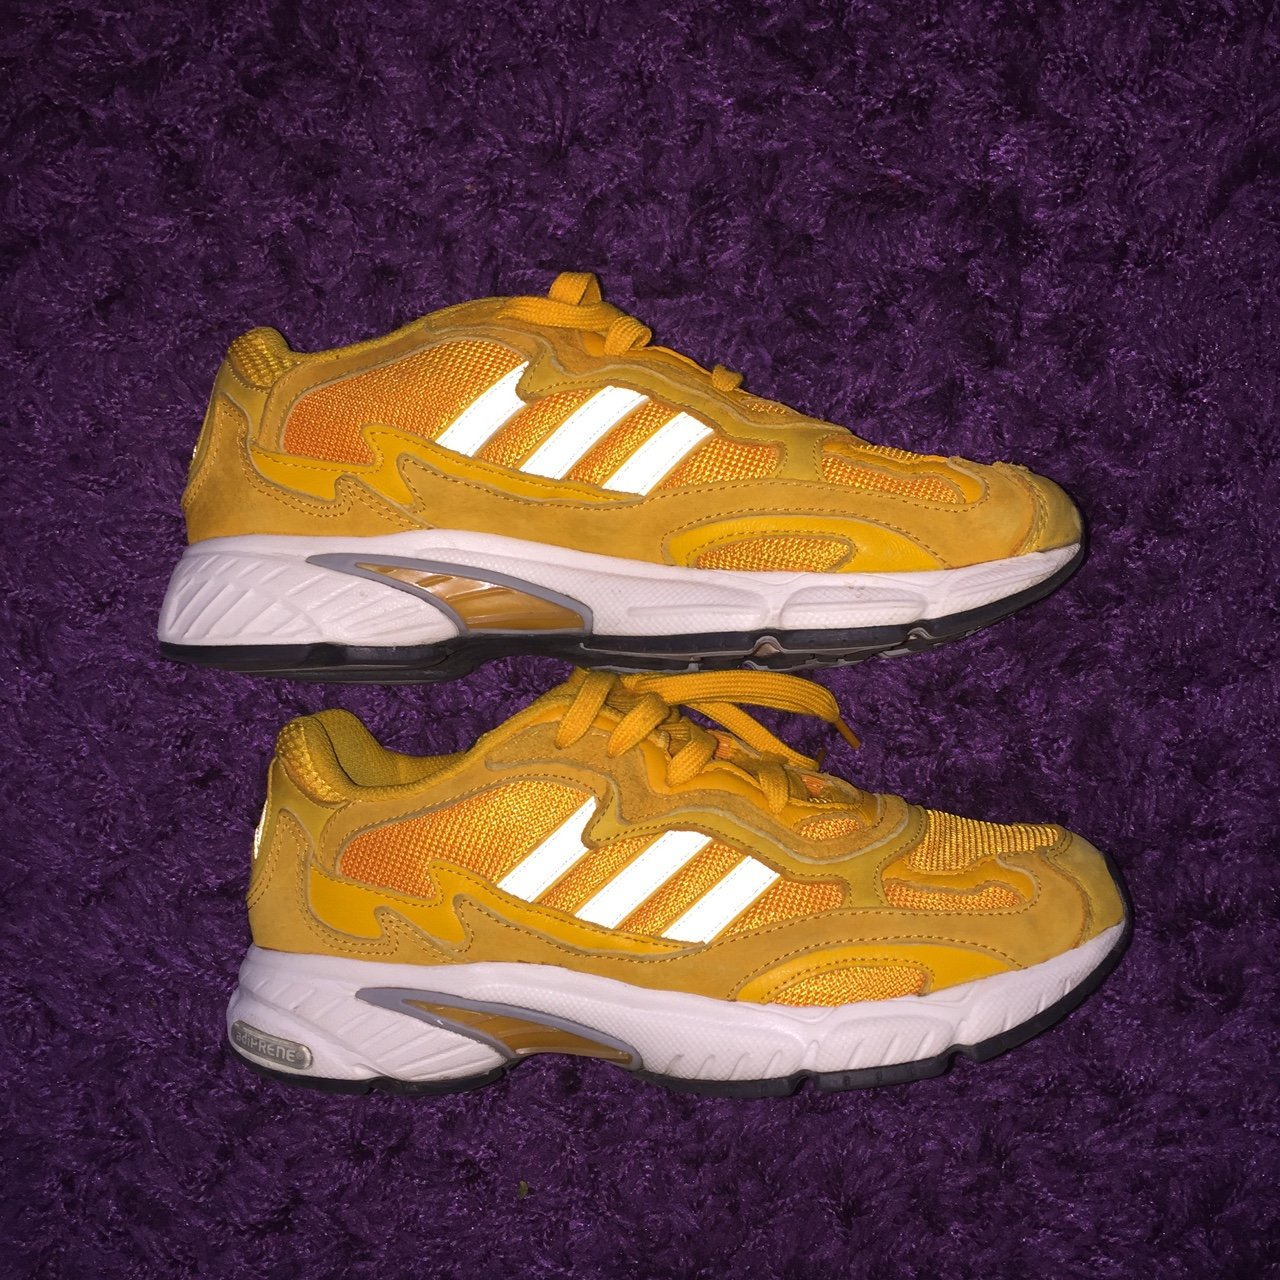 huge discount f2a8f e0c48 jiuling. 2 years ago. London, UK. Adidas Originals Temper Run - Orange ...